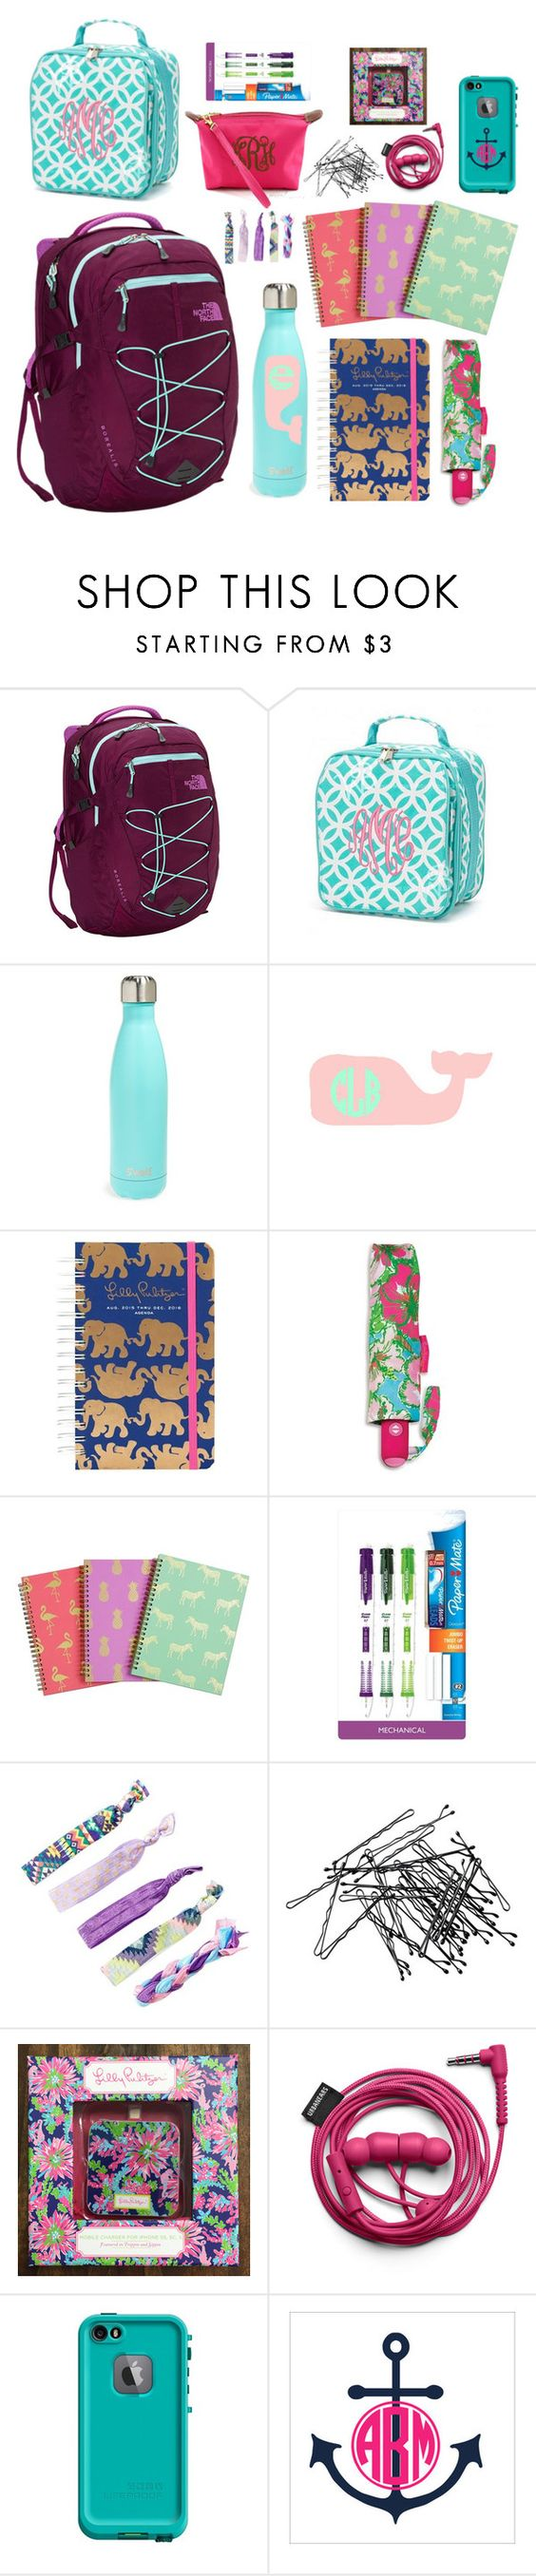 """Dream backpack and supplies"" by pineappleprincess1012 ❤ liked on Polyvore featuring The North Face, S'well, Lilly Pulitzer, Paper Mate, H&M, LifeProof and Champion"